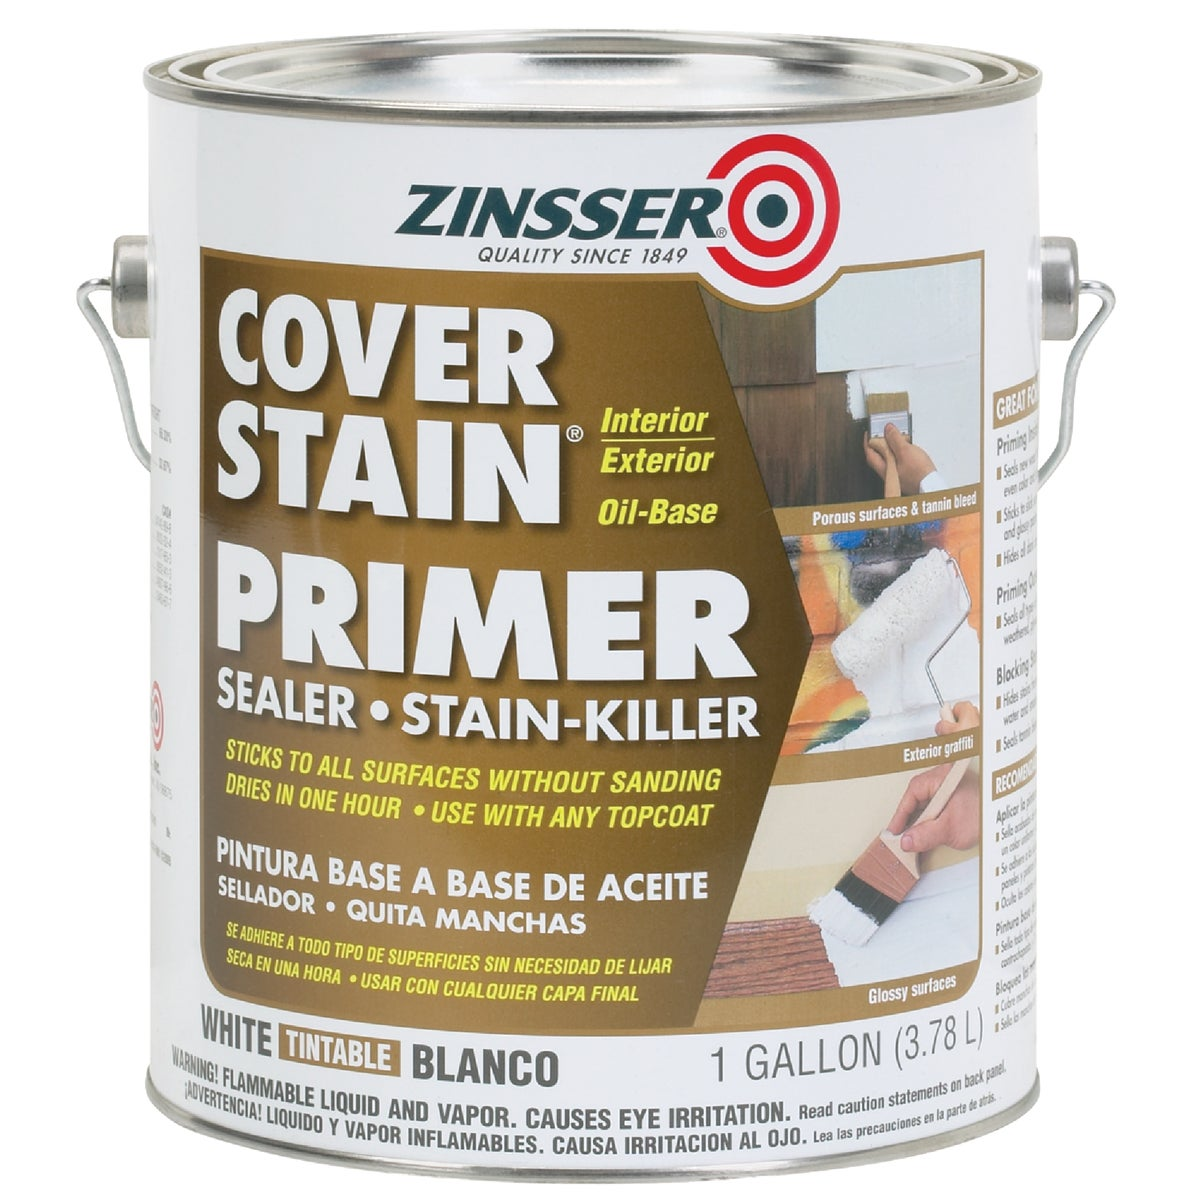 ALKYD WHT STNBLK PRIMER - 3501 by Rustoleum